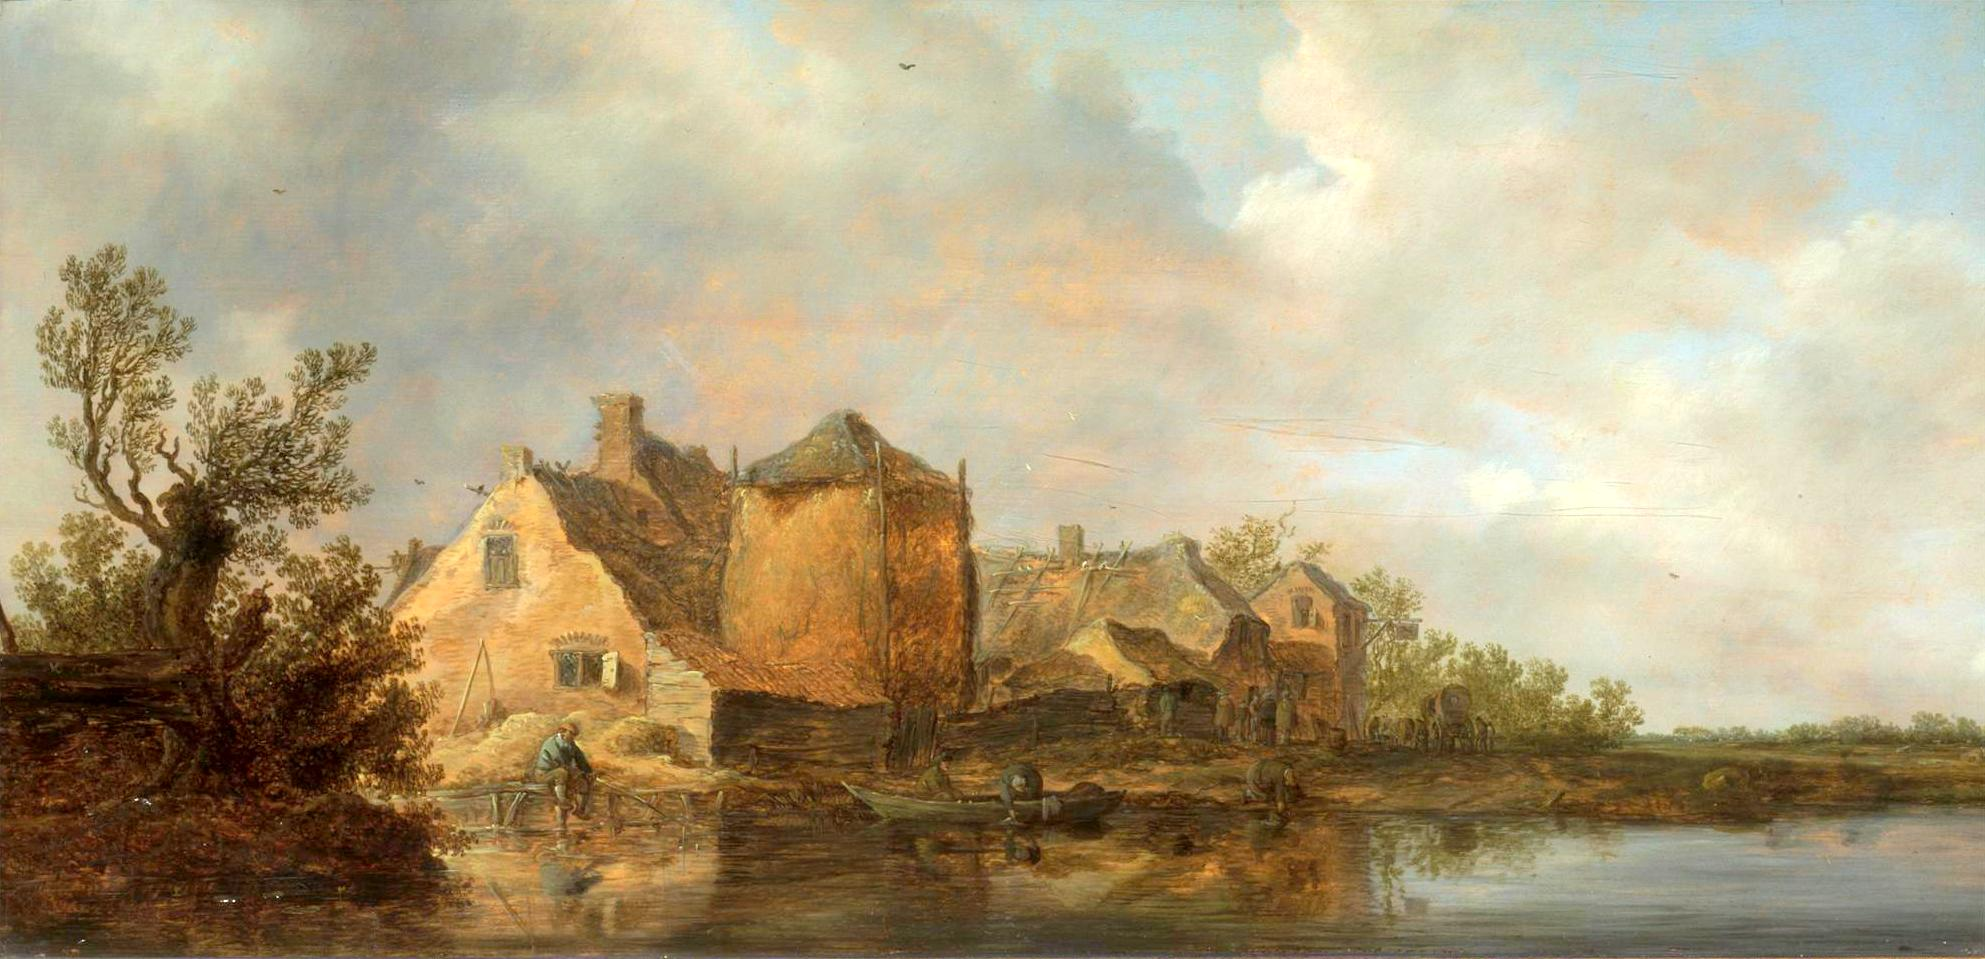 Jan van Goyen – Victoria and Albert Museum CAI.89. Title: River Scene with an Inn. Date: 1630. Materials: oil on oak panel. Dimensions: 40 x 82.5 cm. Inscriptions: VG [monogram] 1630. Nr.: CAI.89. Source: http://collections.vam.ac.uk/item/O132423/river-scene-with-an-inn-oil-painting-goyen-jan-van/. I have changed the light and contrast of the original photo.